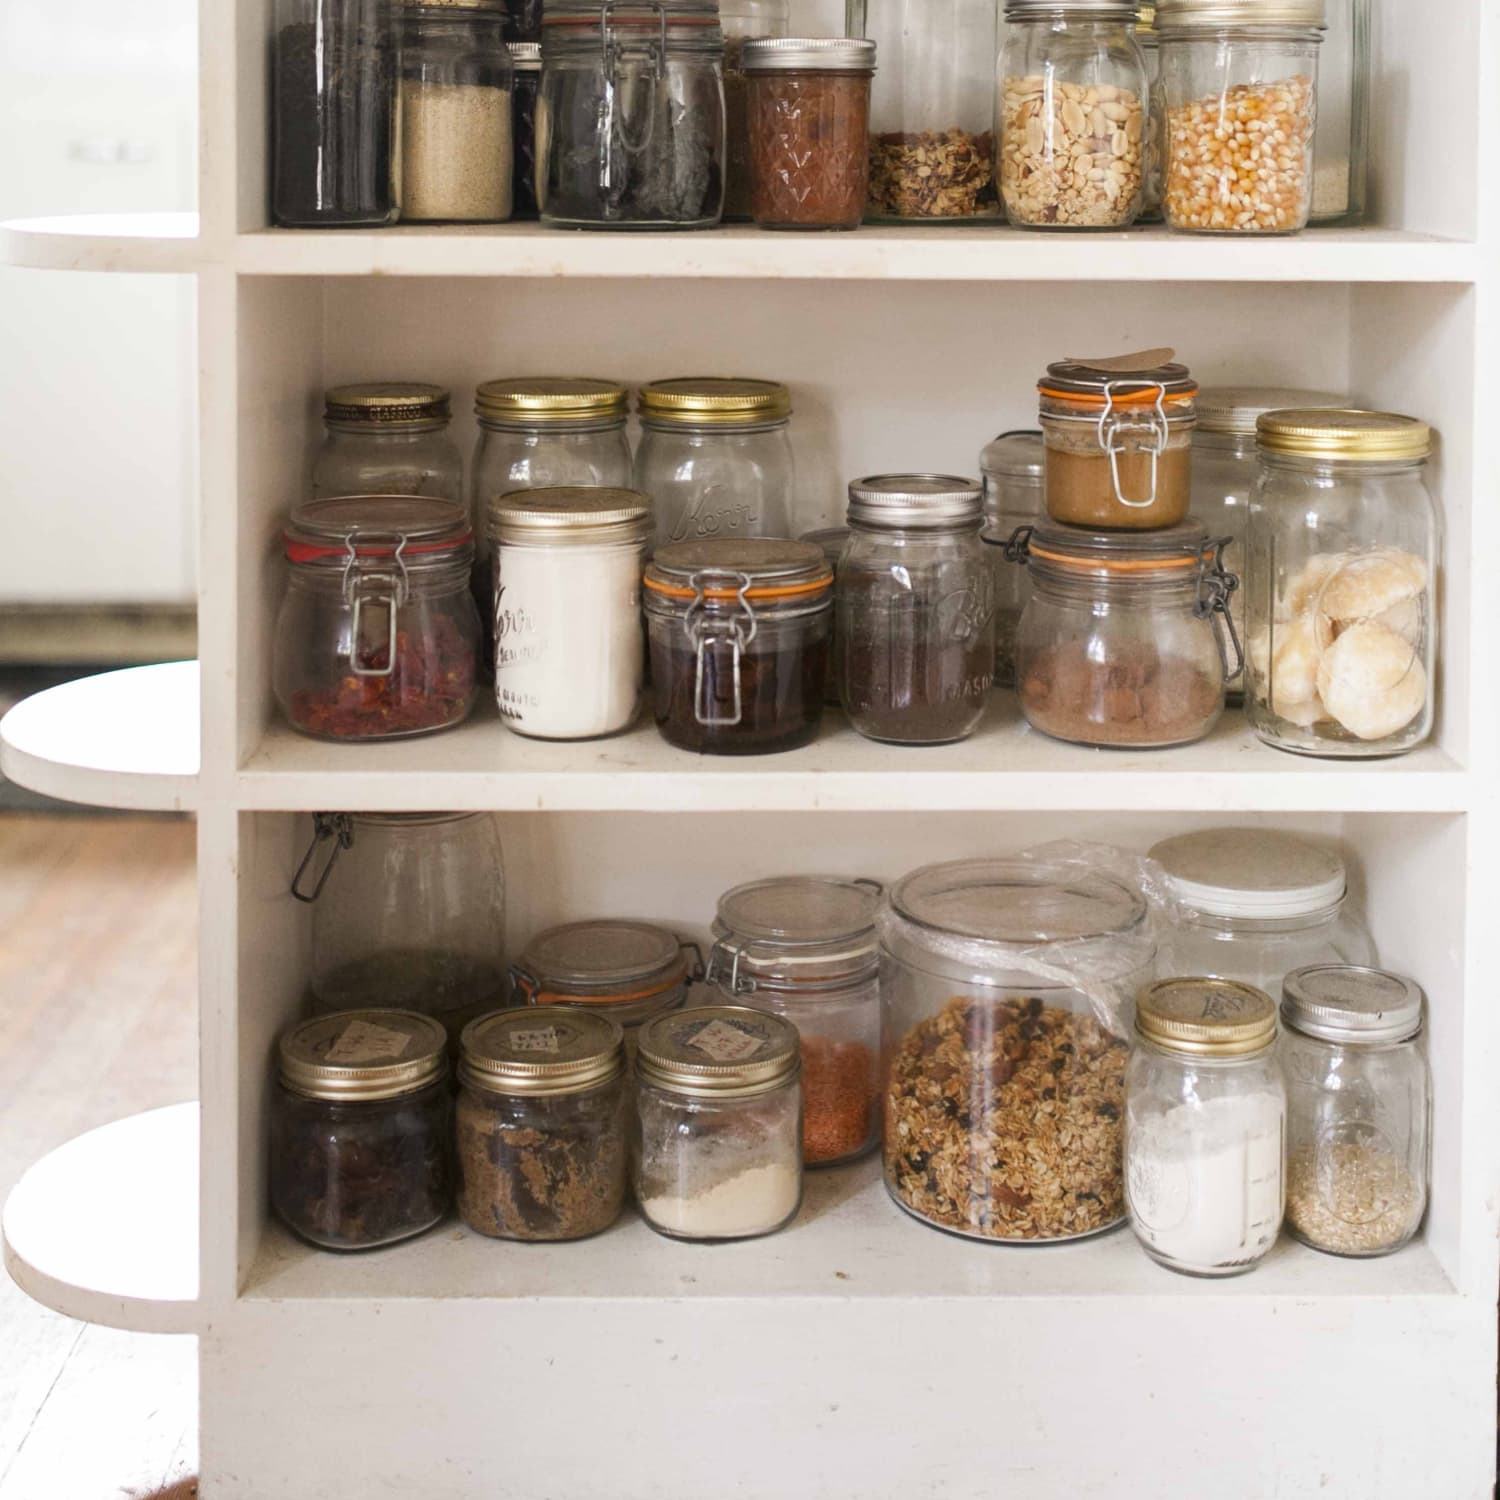 How To Get Rid Of Bugs Mice Rodents - Pantry | Kitchn